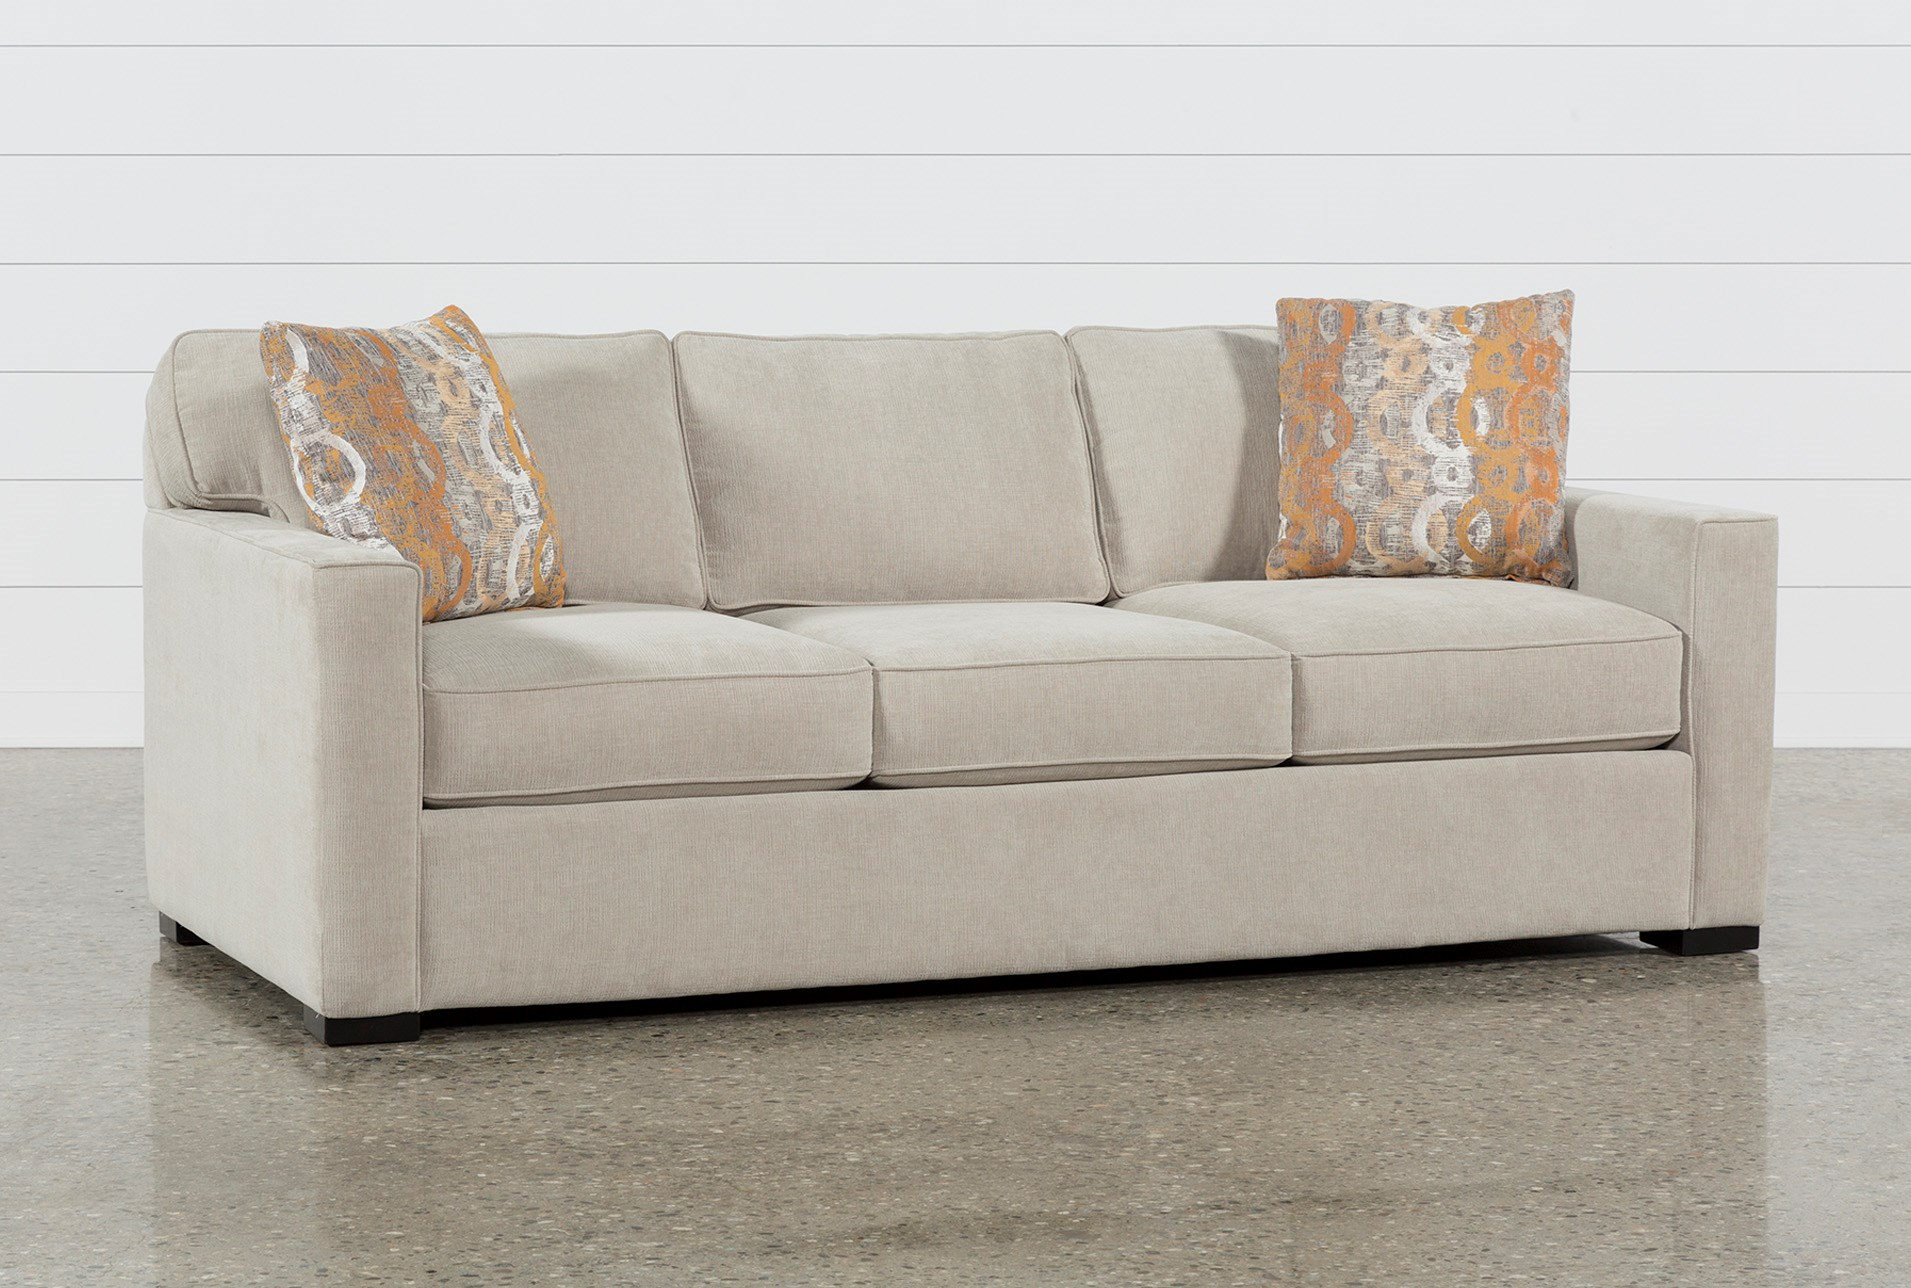 Alder Grande Ii Sofa Qty 1 Has Been Successfully Added To Your Cart